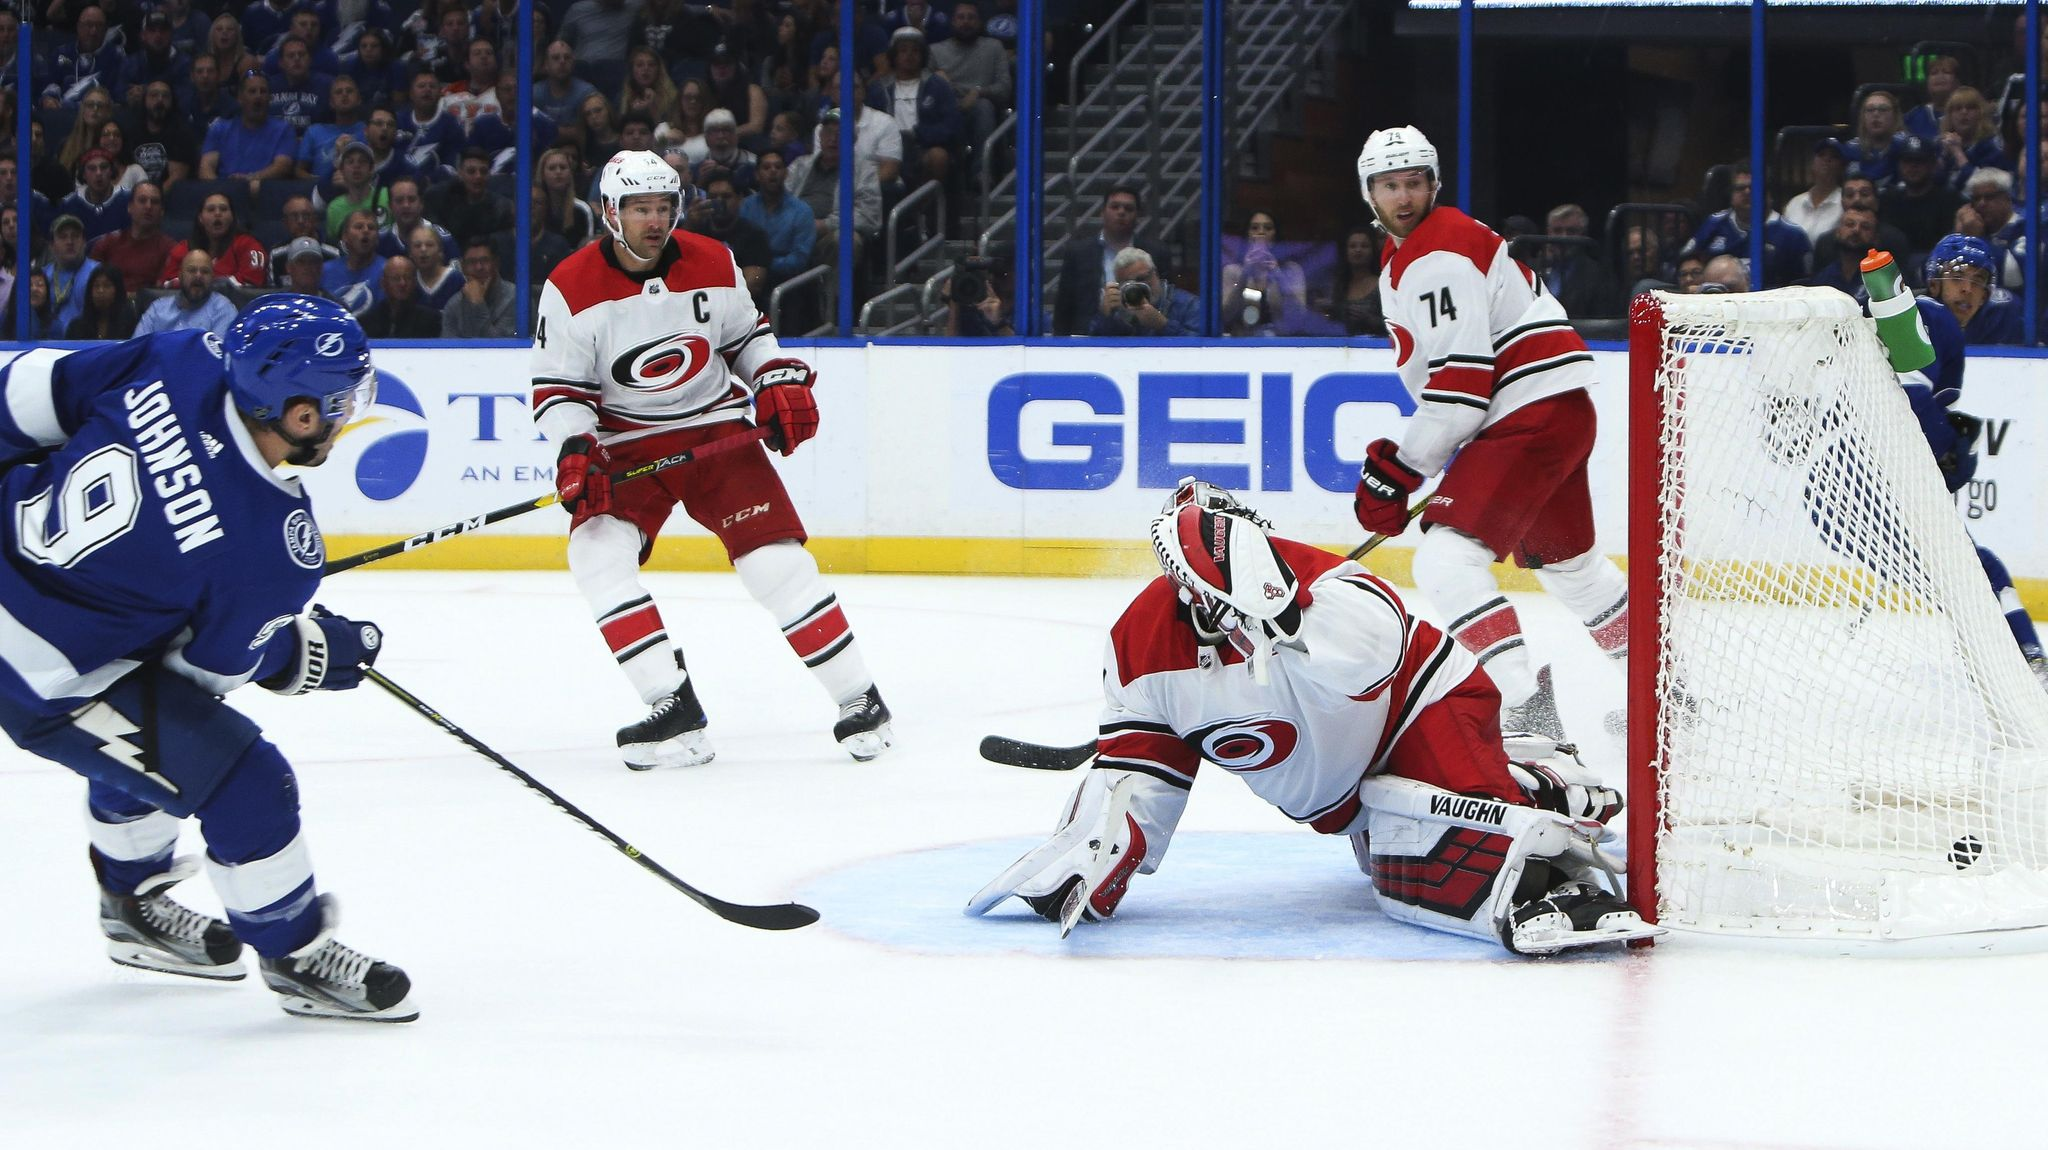 Hurricanes_lightning_hockey_15538_s2048x1150